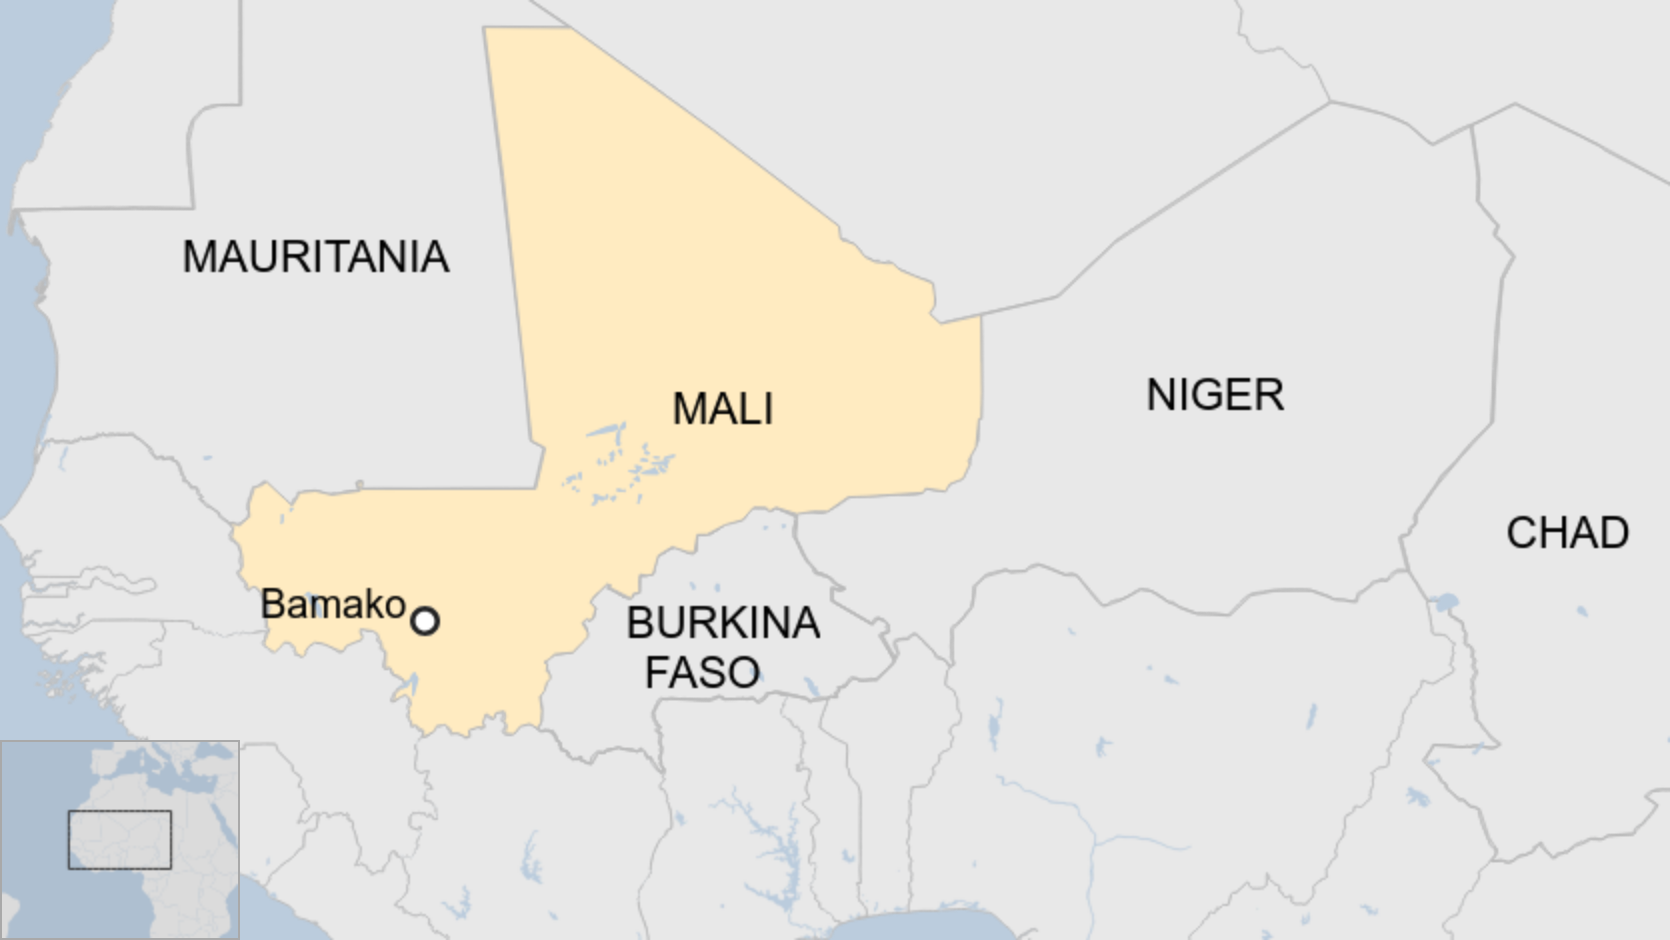 Map of the Sahel countries: Mauritania, Mali, Niger, Burkina Faso and Chad